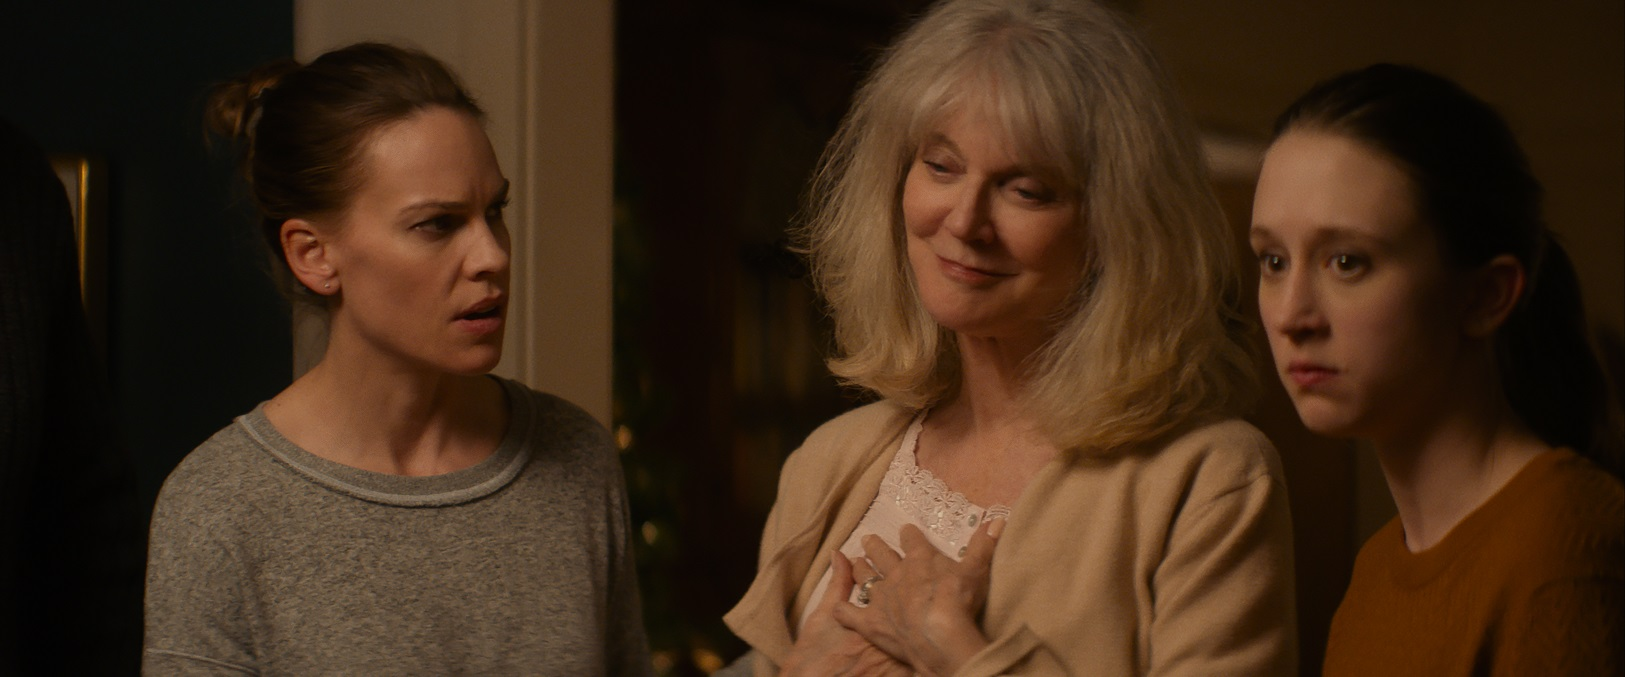 Hilary Swank, Blythe Danner & Taissa Farmiga in WHAT THEY HAD.